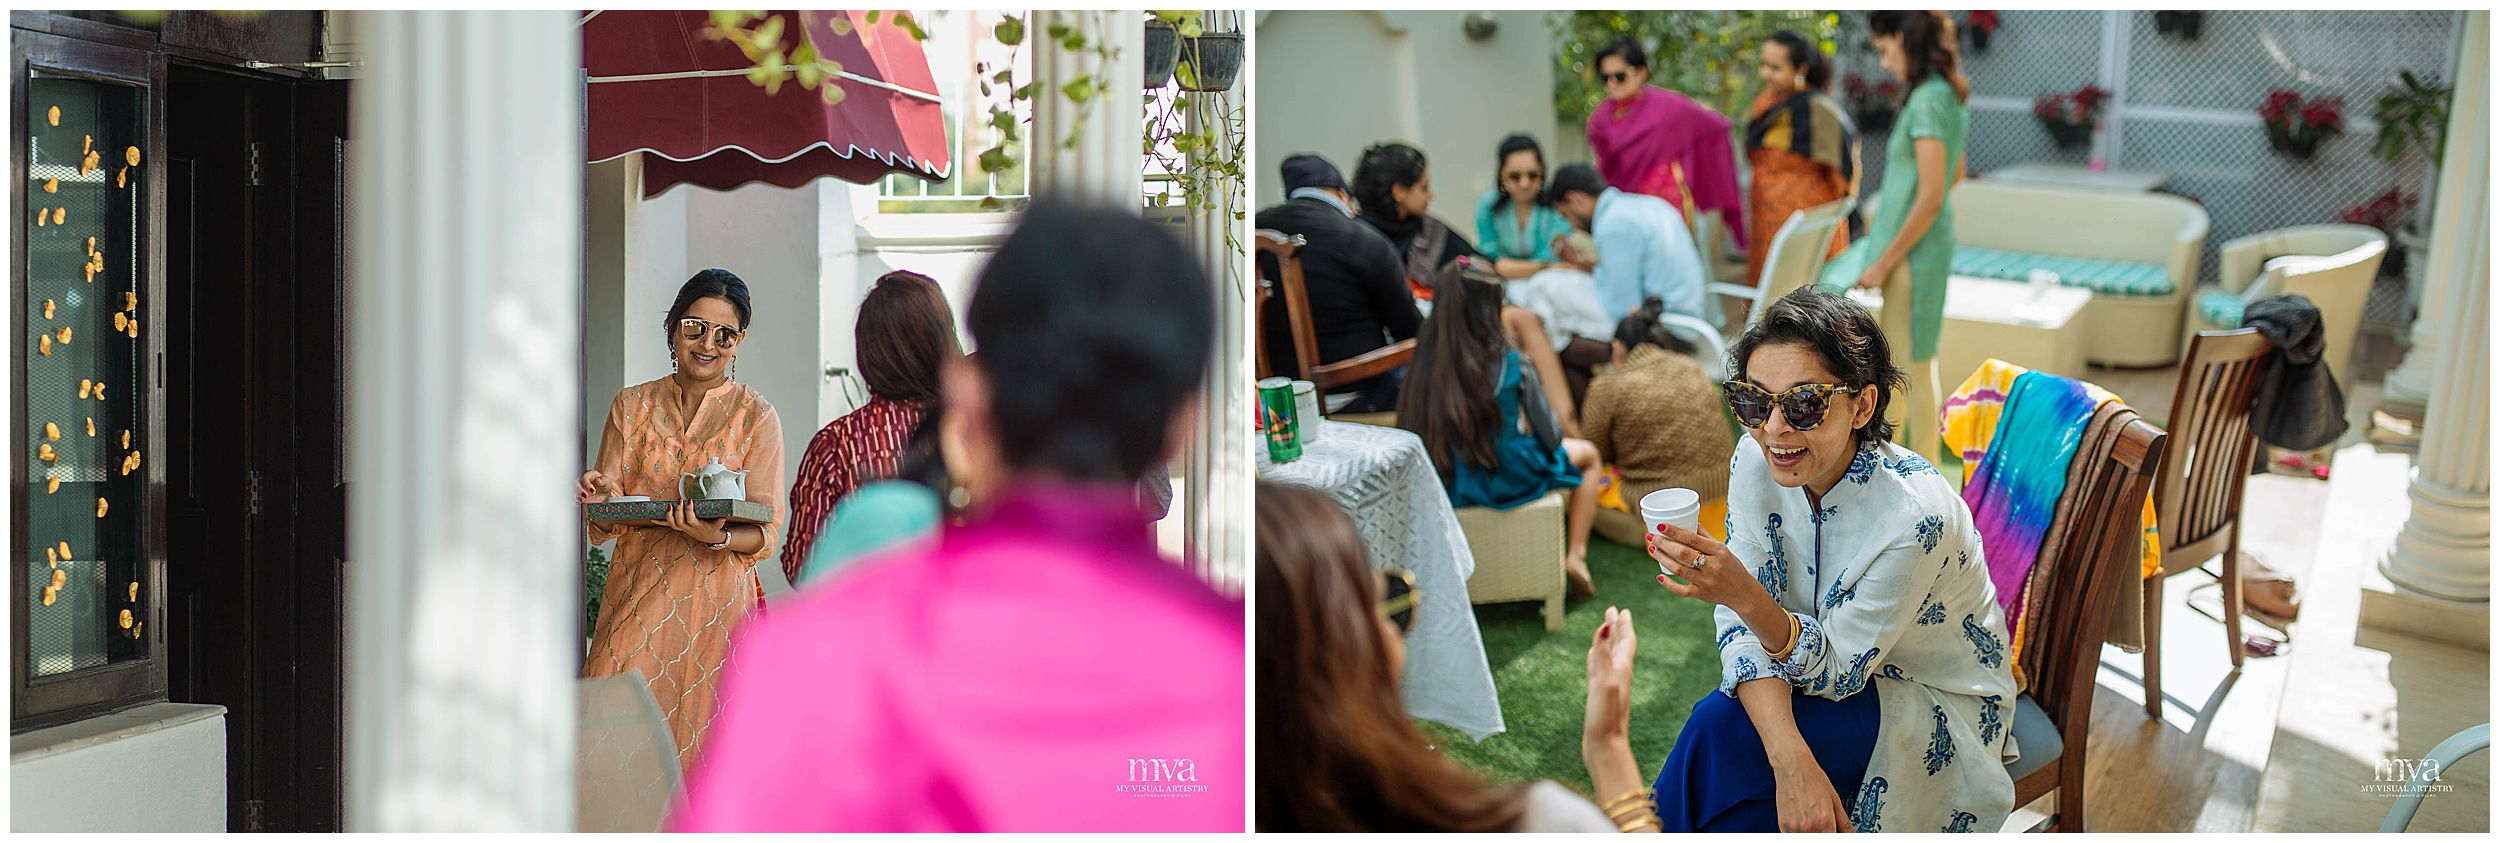 SAHIBA_KARTHIK_MYVISUALARTISTRY_WEDDING_PHOTOGRAPHY_MVA_KERALA_GURGAON_0005.jpg